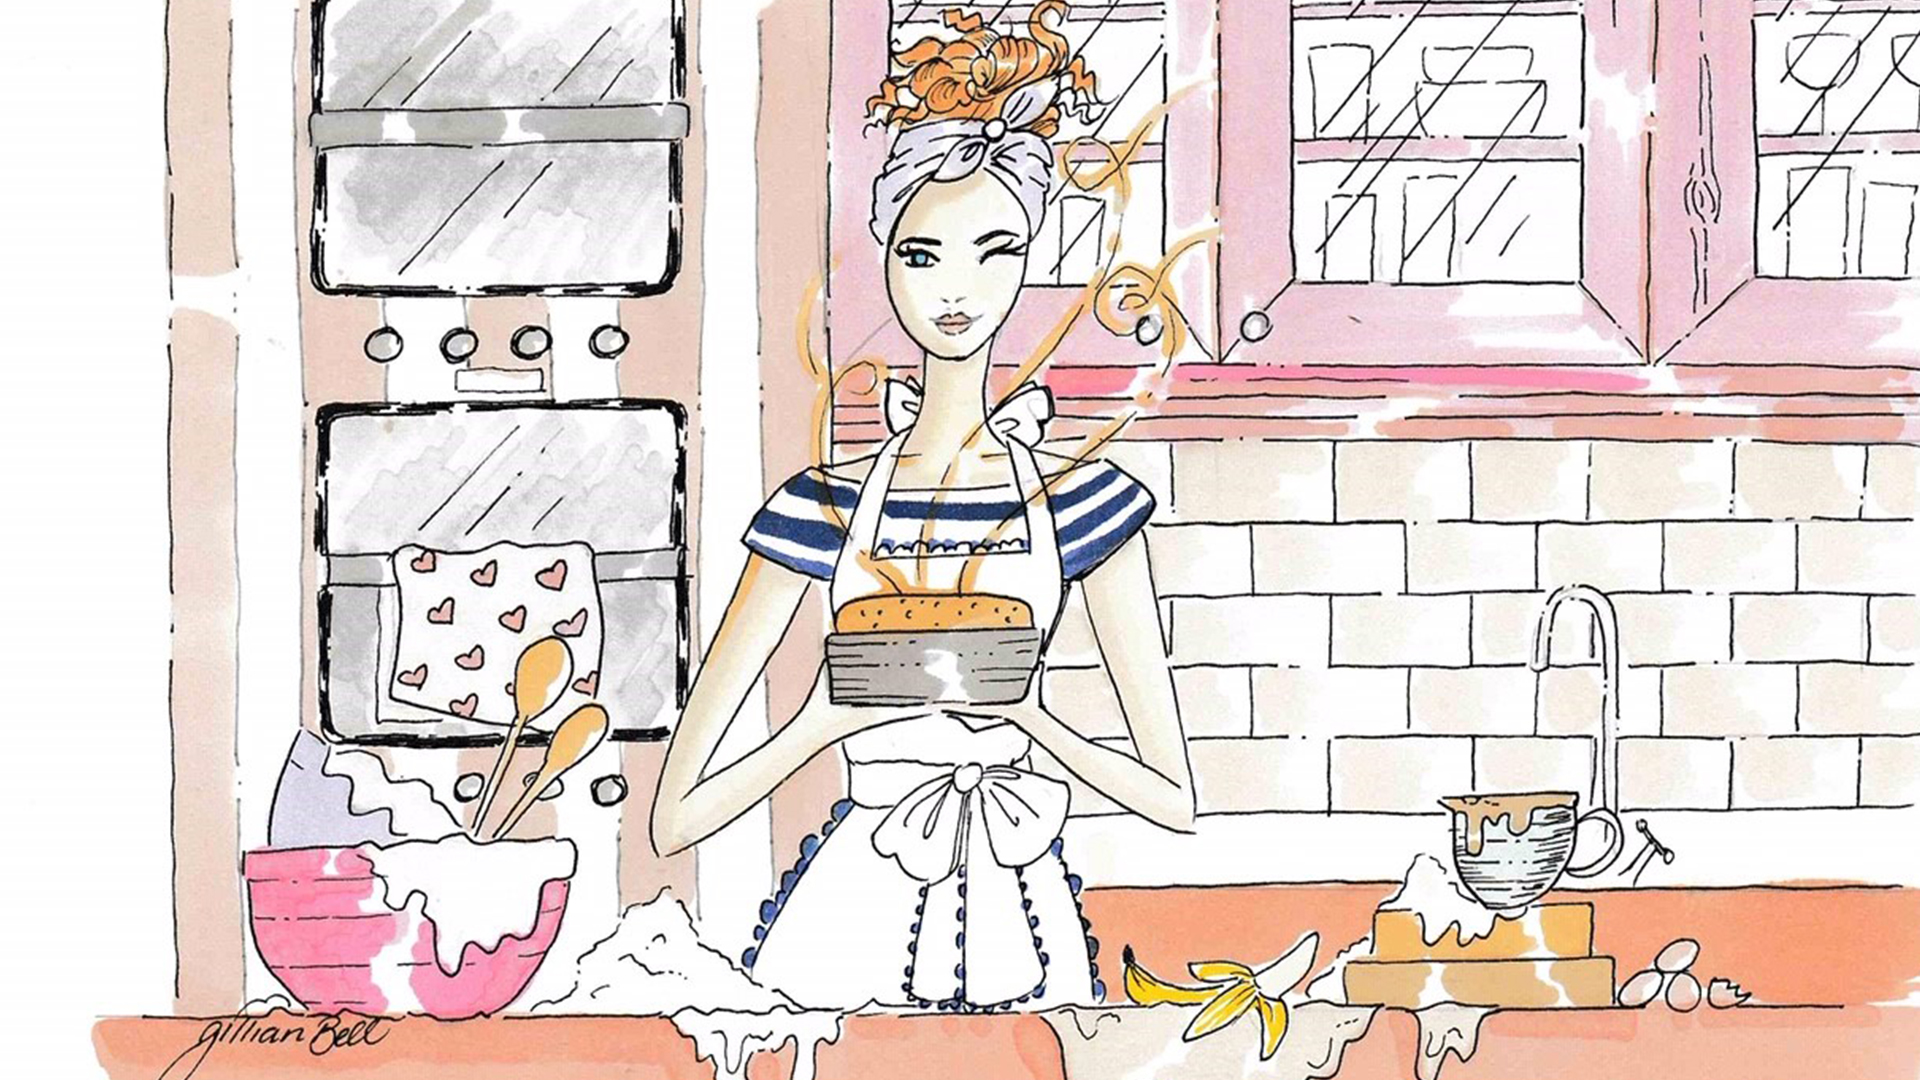 Artist Gillian Bell Illustrations for Kildare Village